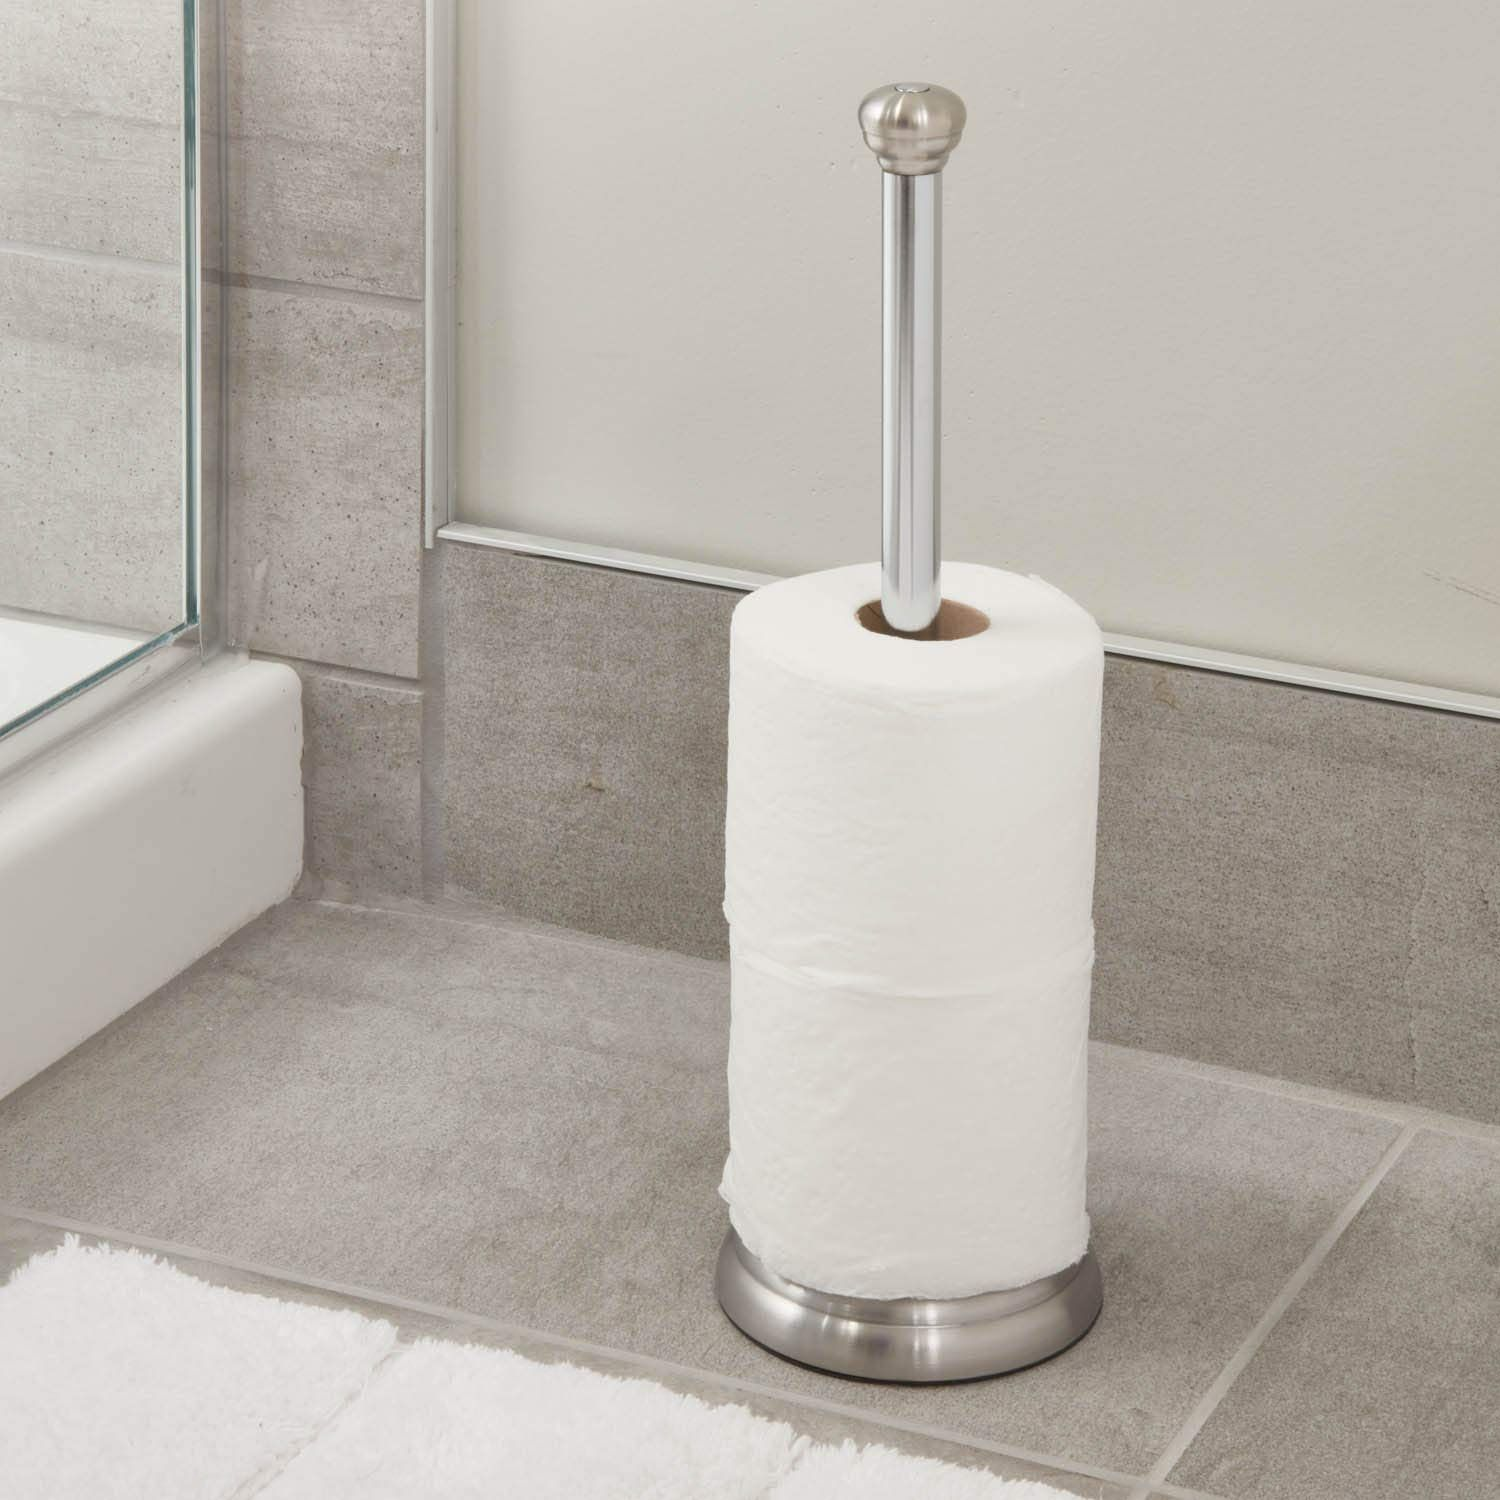 Interdesign York Free Standing Tissue Holder